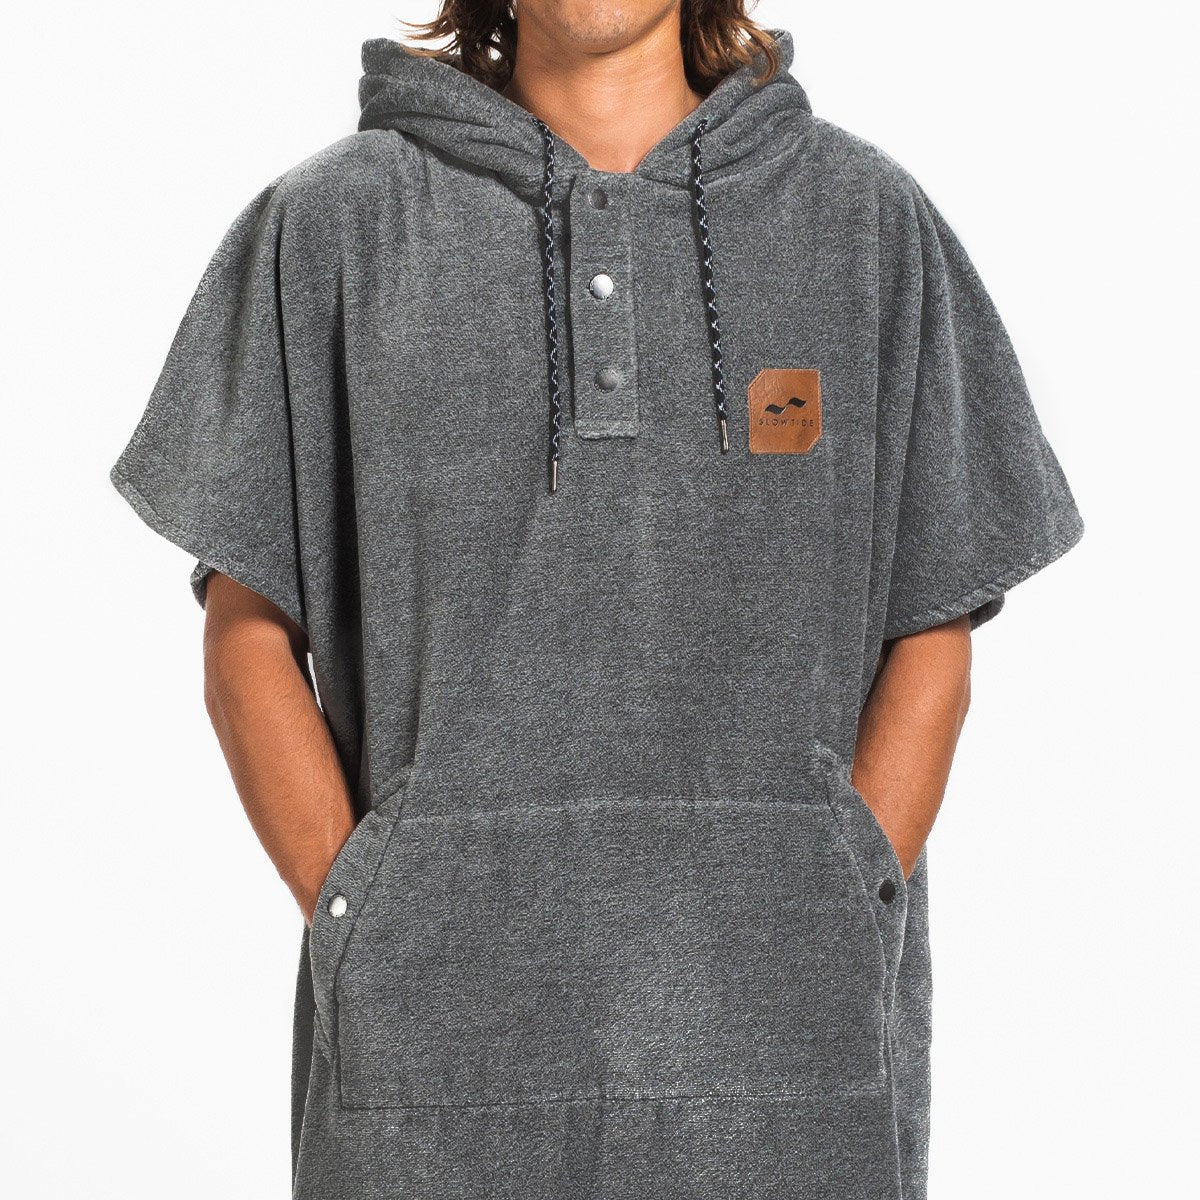 The Digs Changing Poncho L/XL